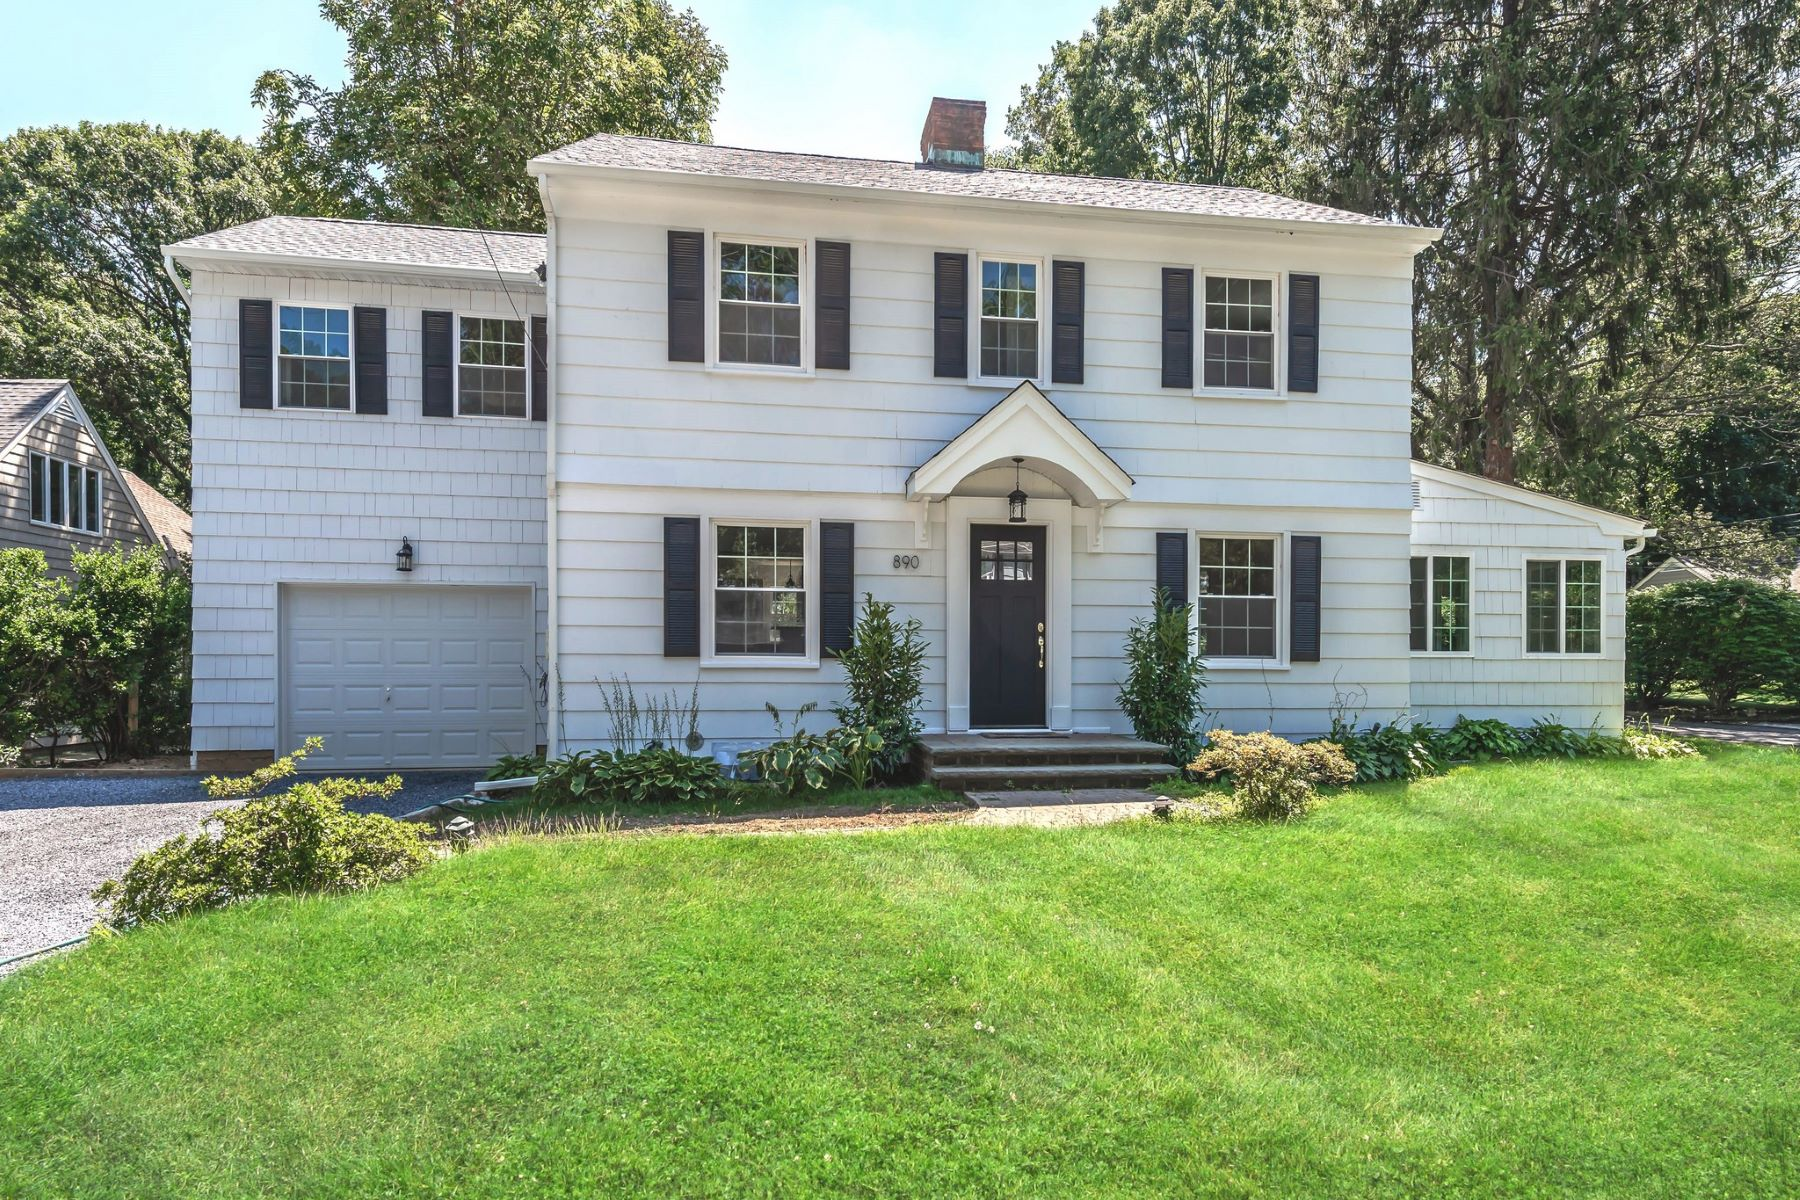 Single Family Homes for Sale at Oyster Bay 890 Hilltop Road Oyster Bay, New York 11771 United States